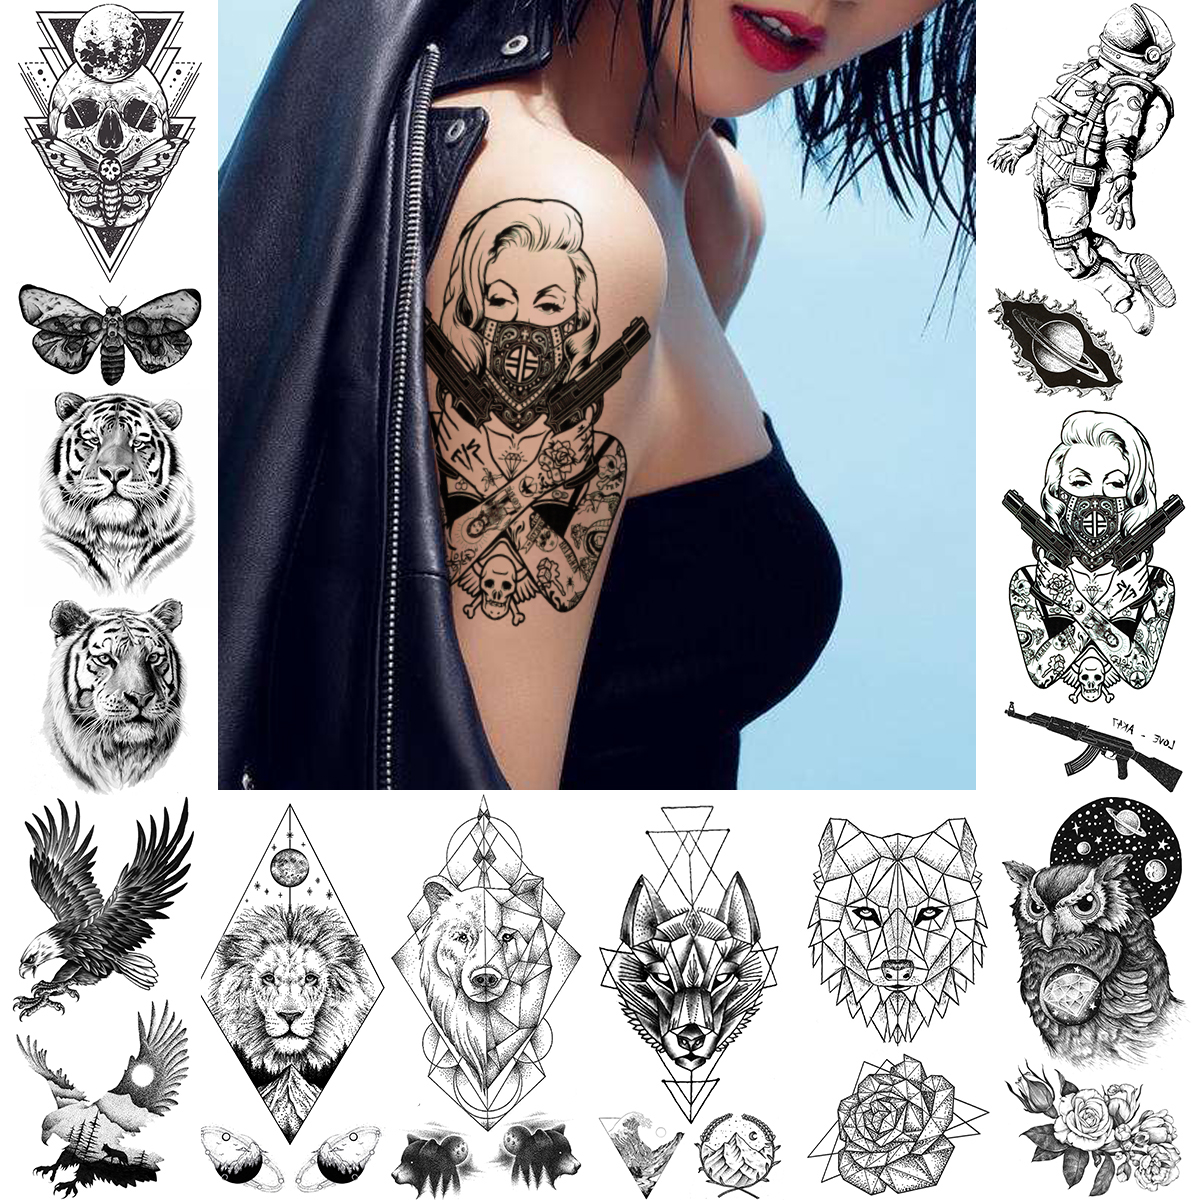 Rebellious Mask Women Temporary <font><b>Tattoo</b></font> For Adults Gun <font><b>Gangster</b></font> Warrior Tatoo Paper Realistic Black Fake Skull Owl <font><b>Tattoo</b></font> Sitcker image